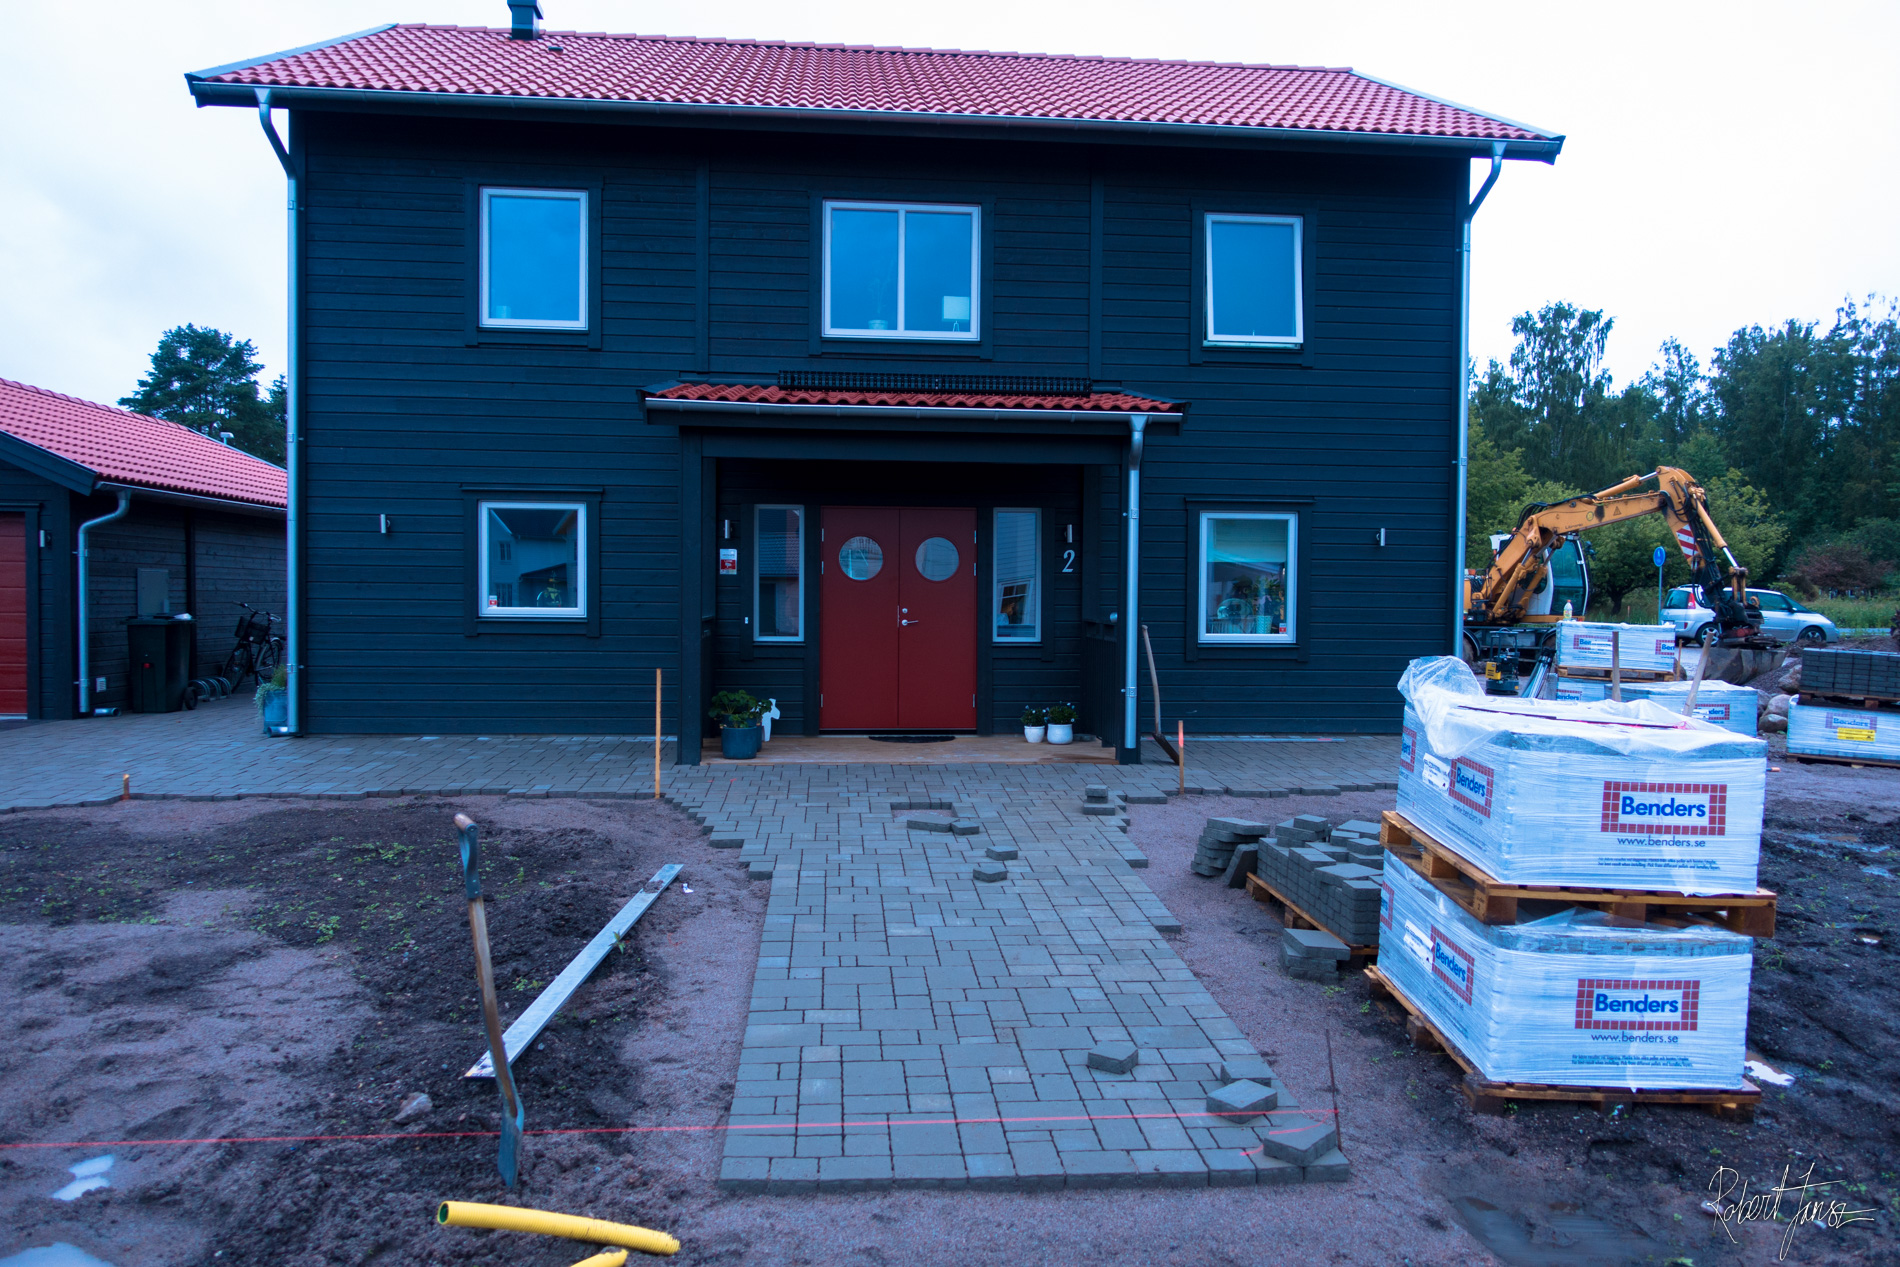 Paving stone in front house